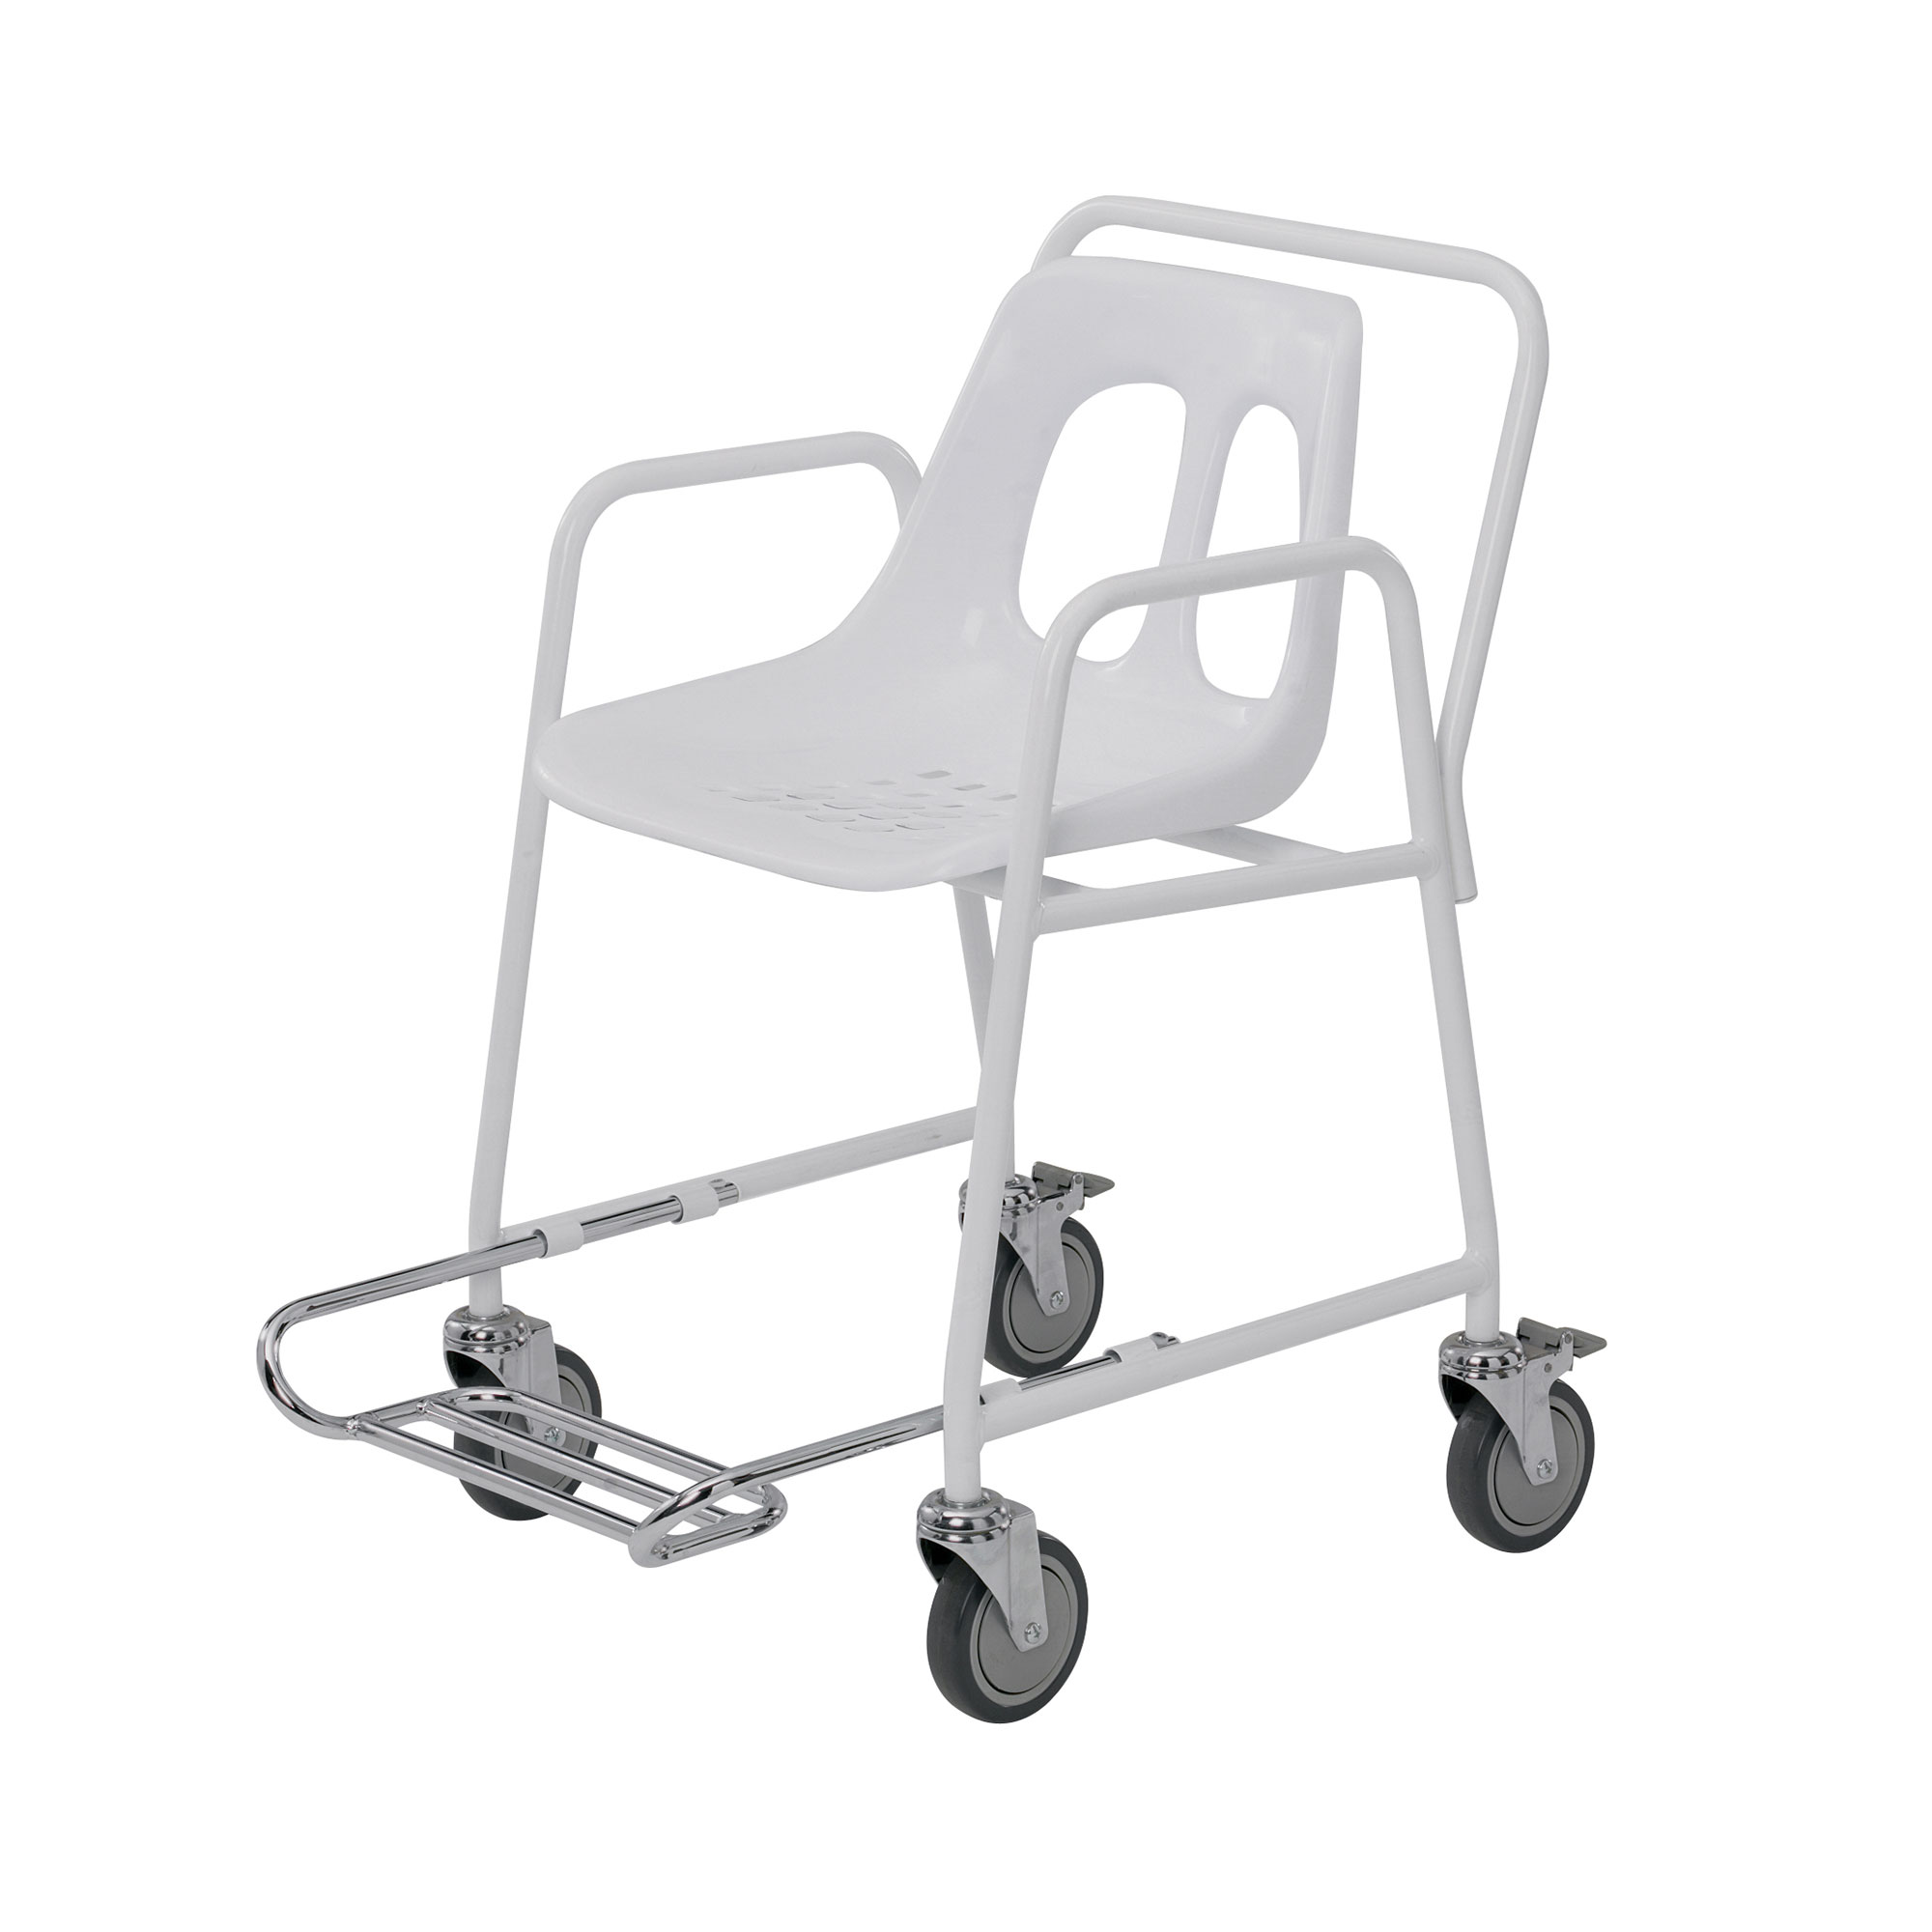 Superb Mobile Shower Chair Footrest Roma Medical Shower Foot Rest Ideas Shower Foot Rest Home Depot houzz-02 Shower Foot Rest